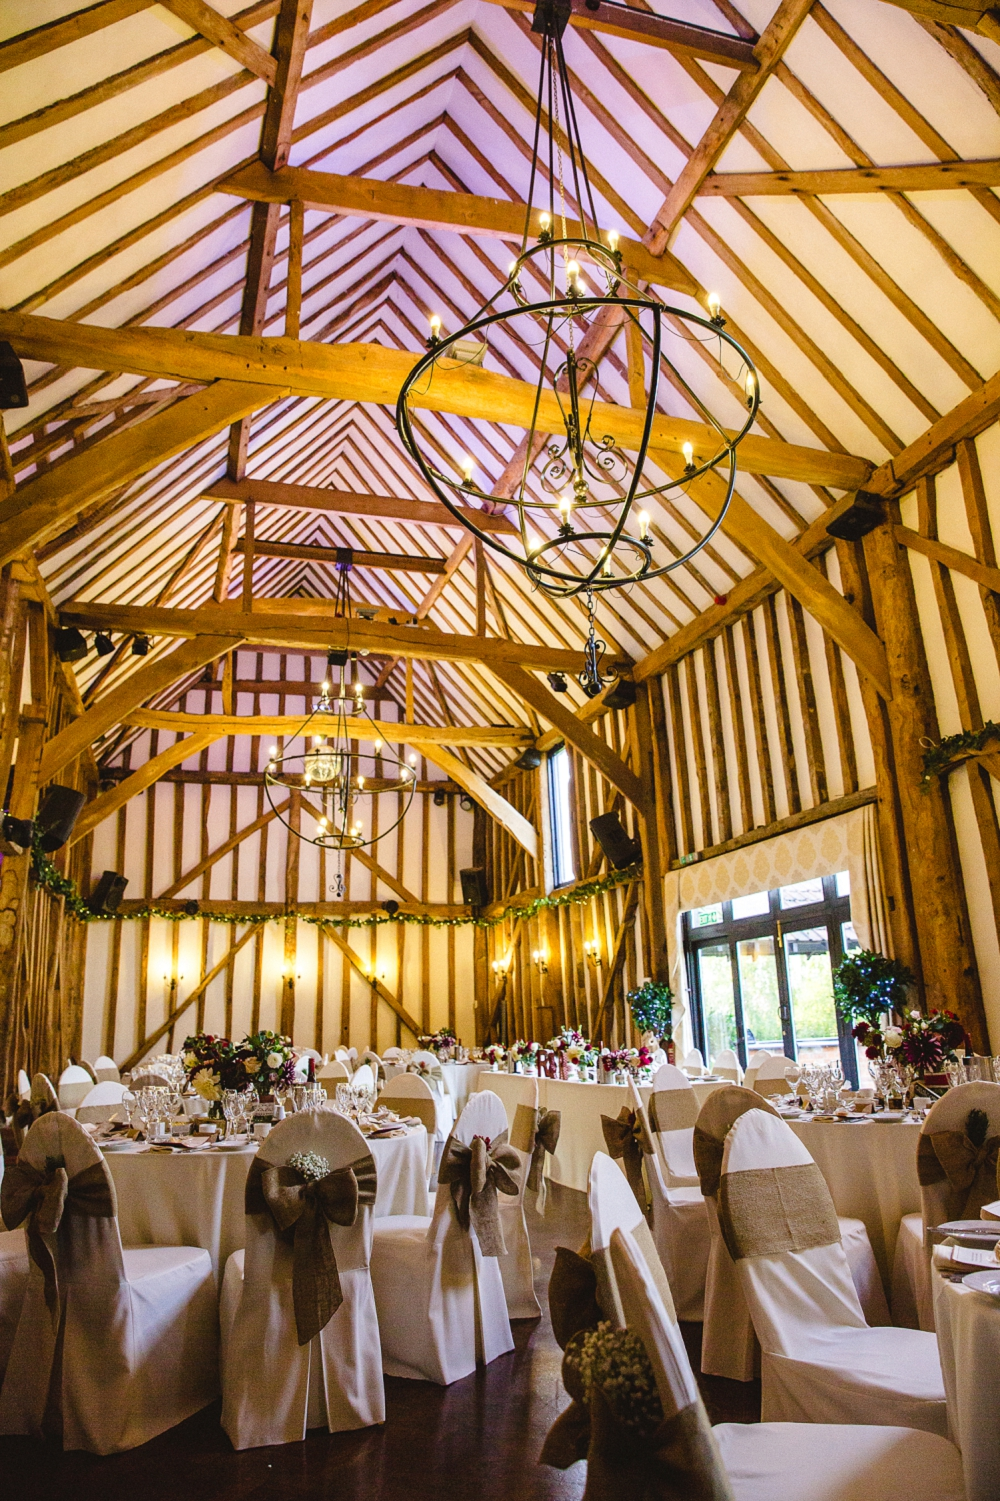 Crondon Park Wedding - Reception Barn